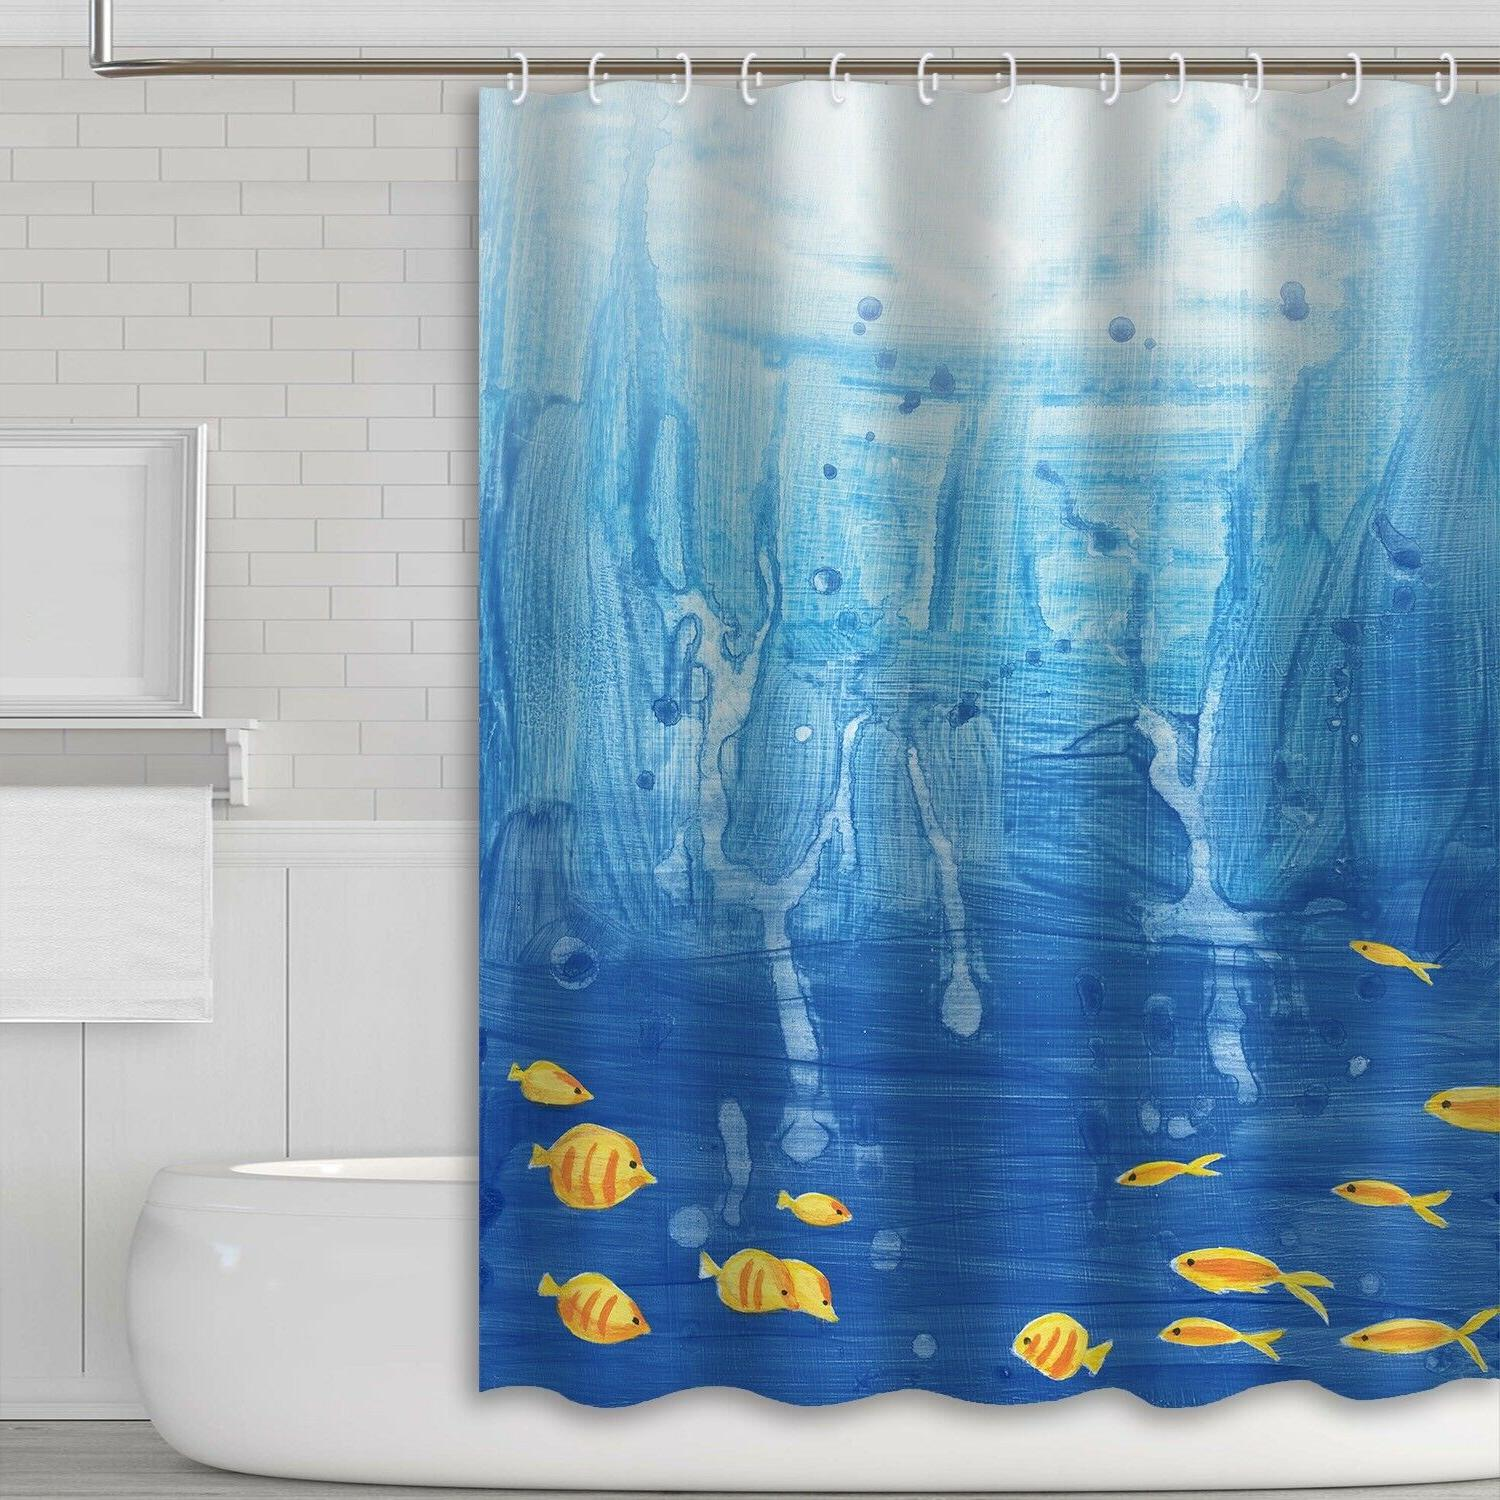 "HQ 69""X70"" 3D Printed Waterproof Fabric Bathroom Shower Curt"